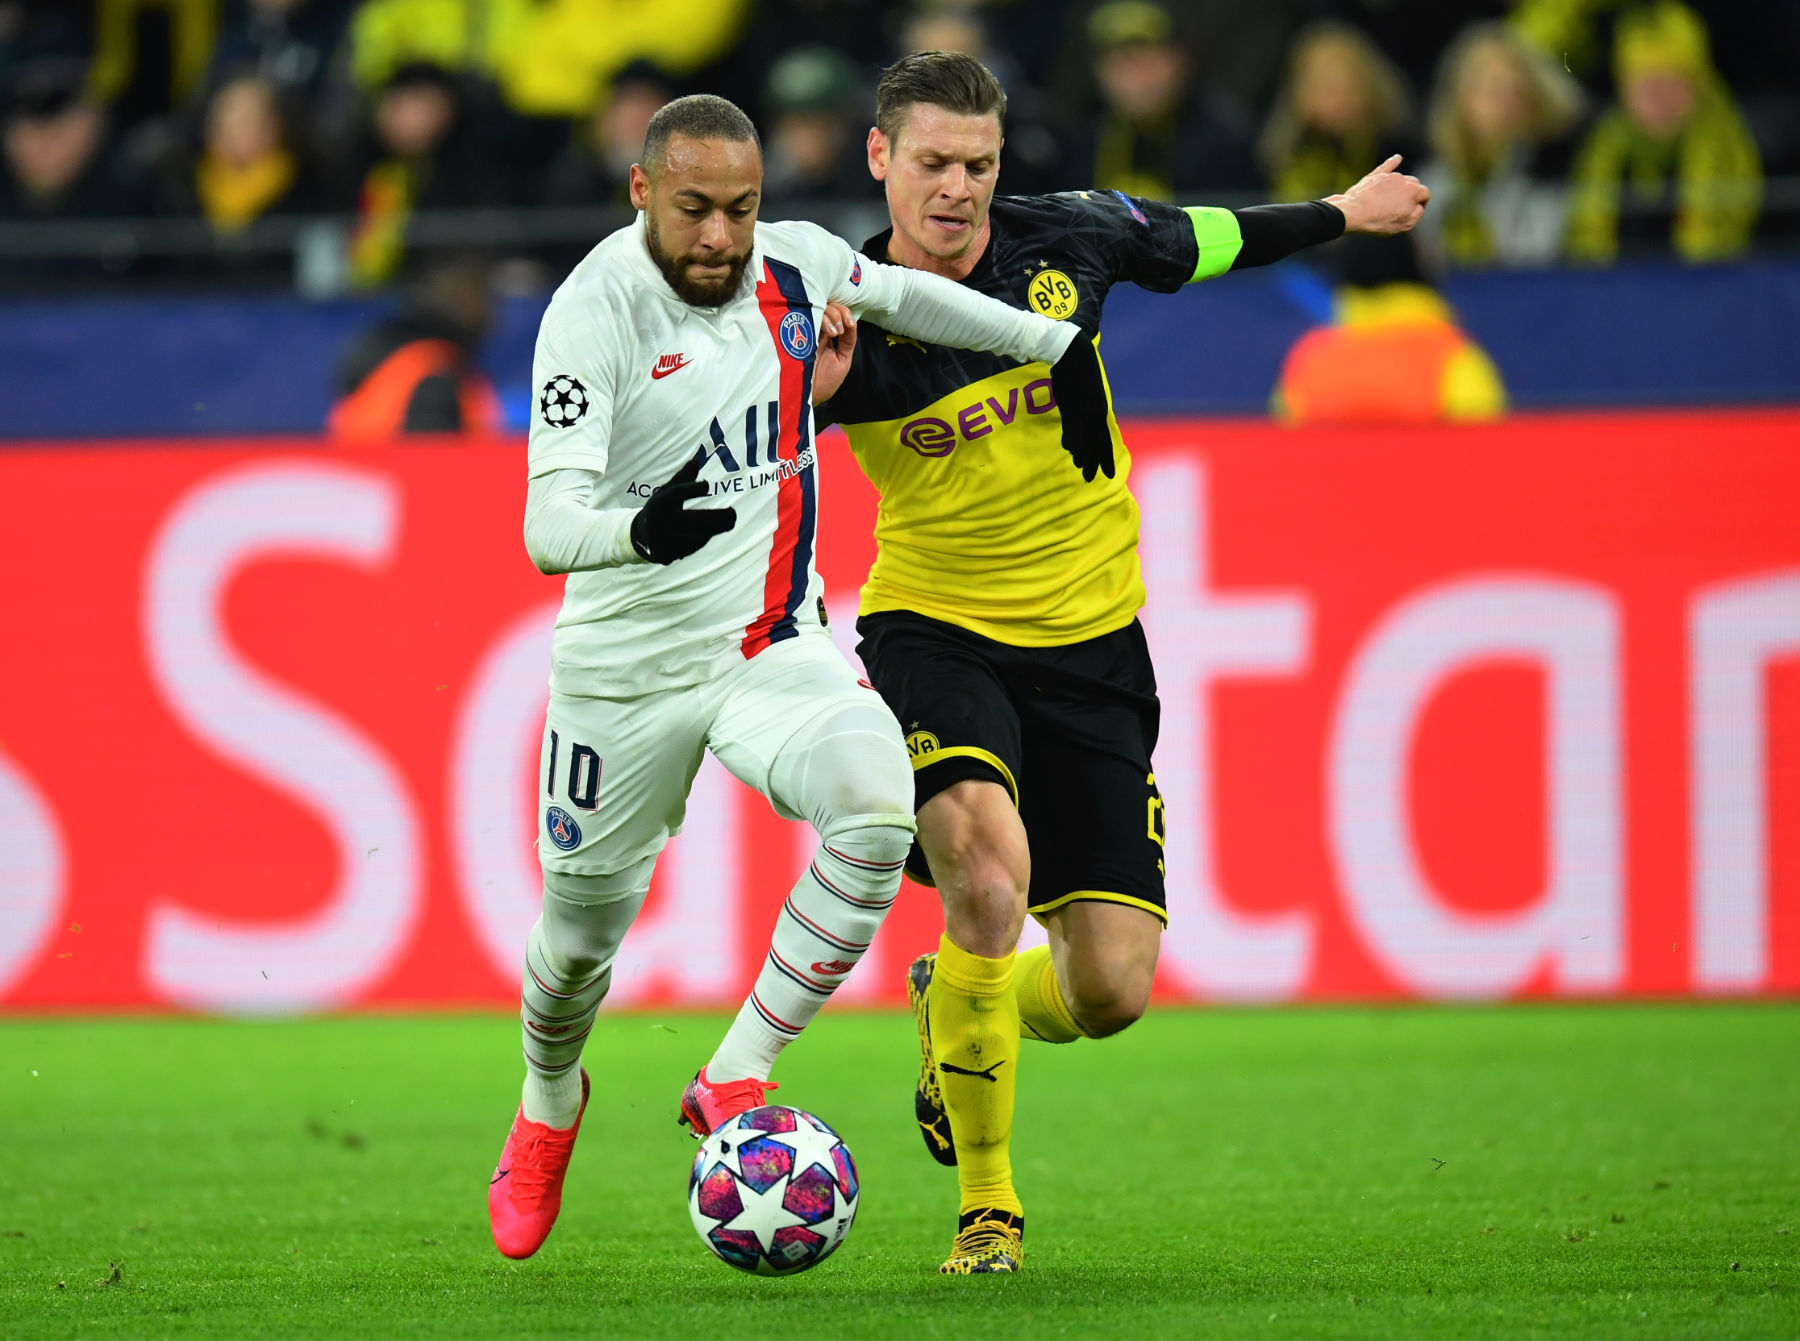 PSG Talking Podcast Dortmund Supporter Explains Why PSG